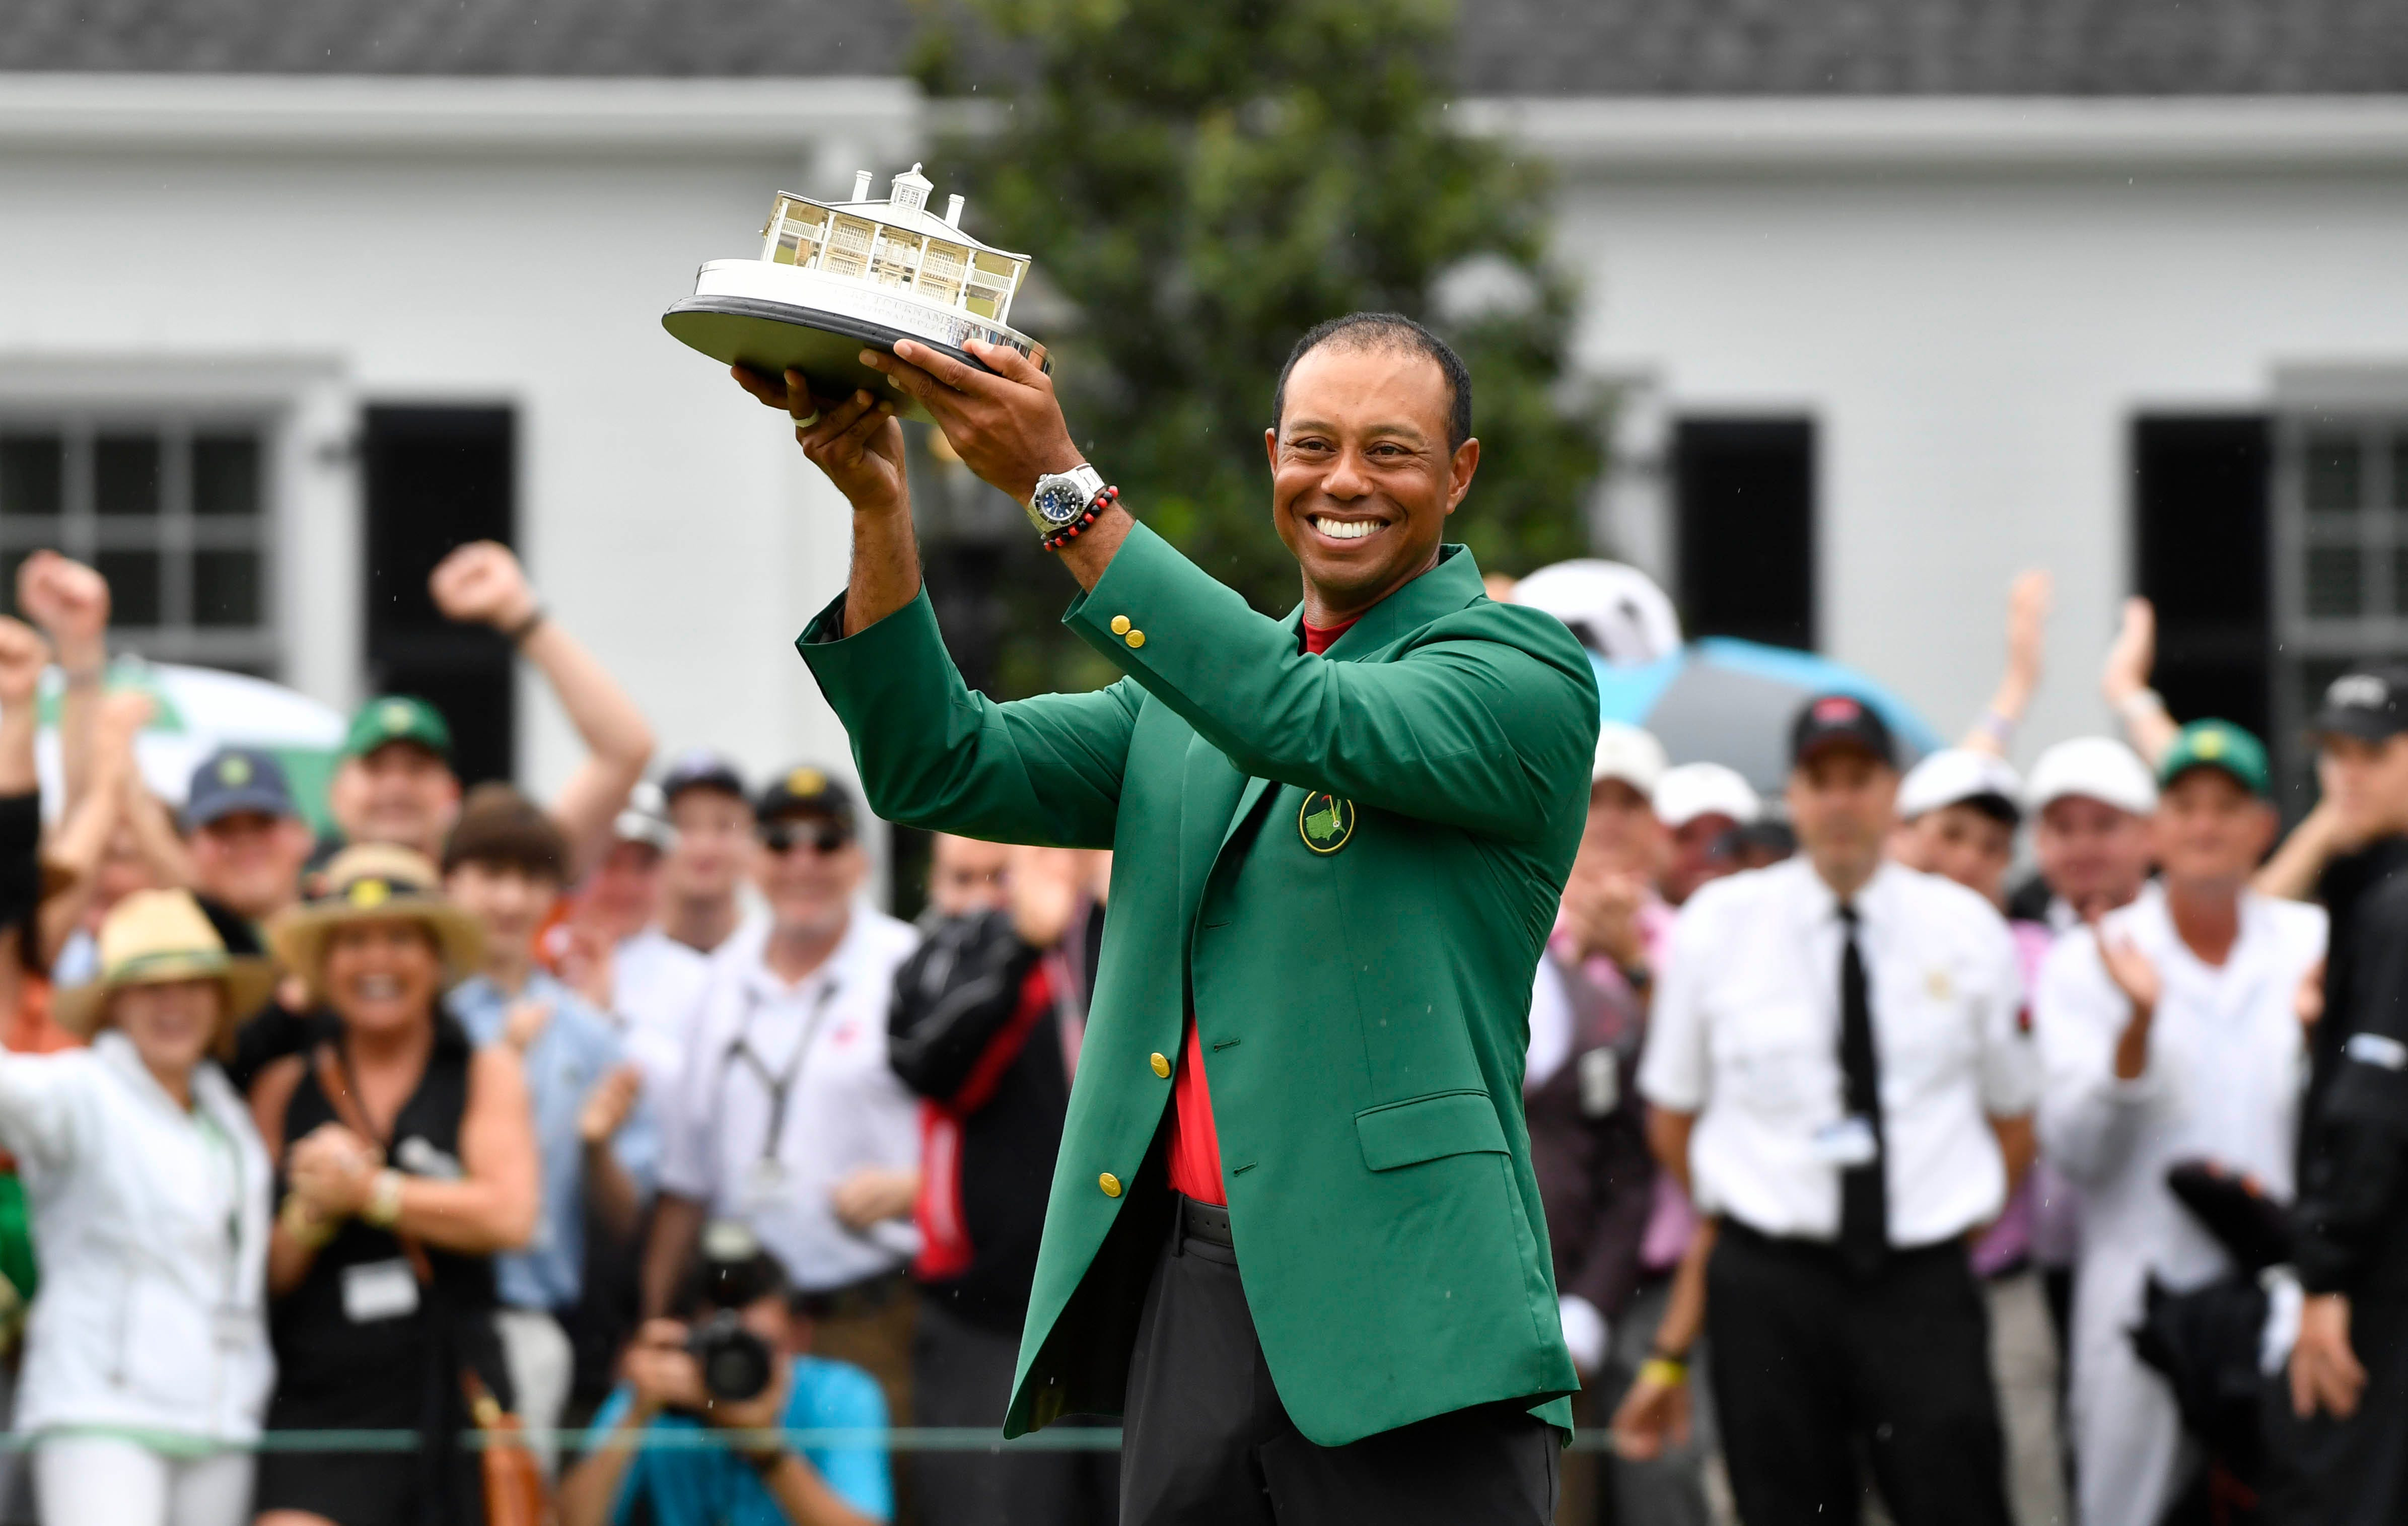 Tiger Woods celebrates with the green jacket and trophy after winning the Masters.